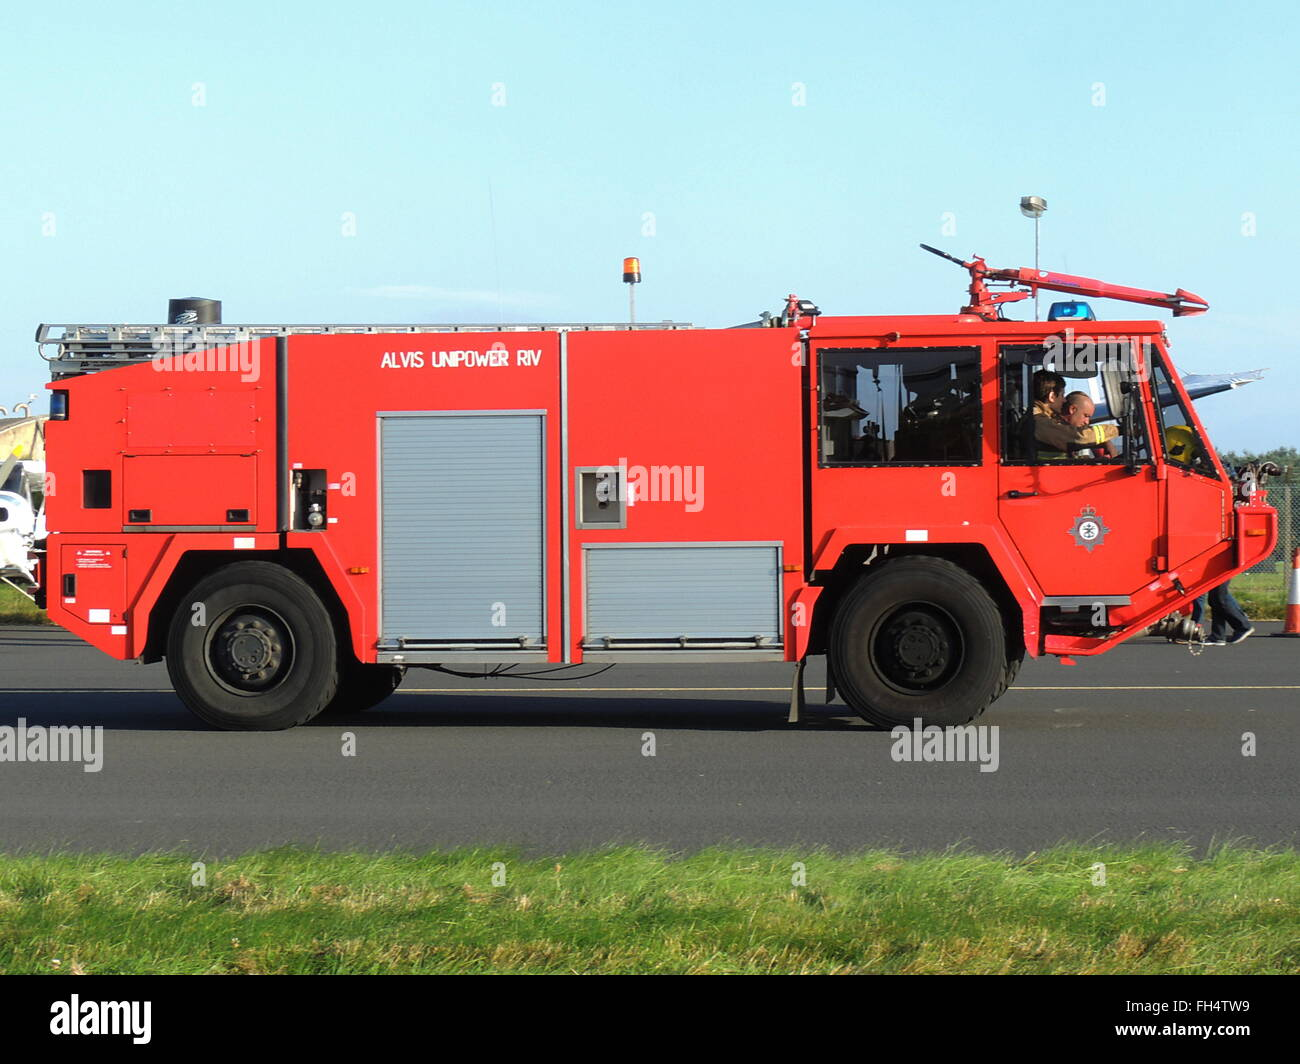 An Alvis Unipower RIV fire tender of the Defence Fire and Rescue Service, at the RAF Leuchars Airshow in September - Stock Image